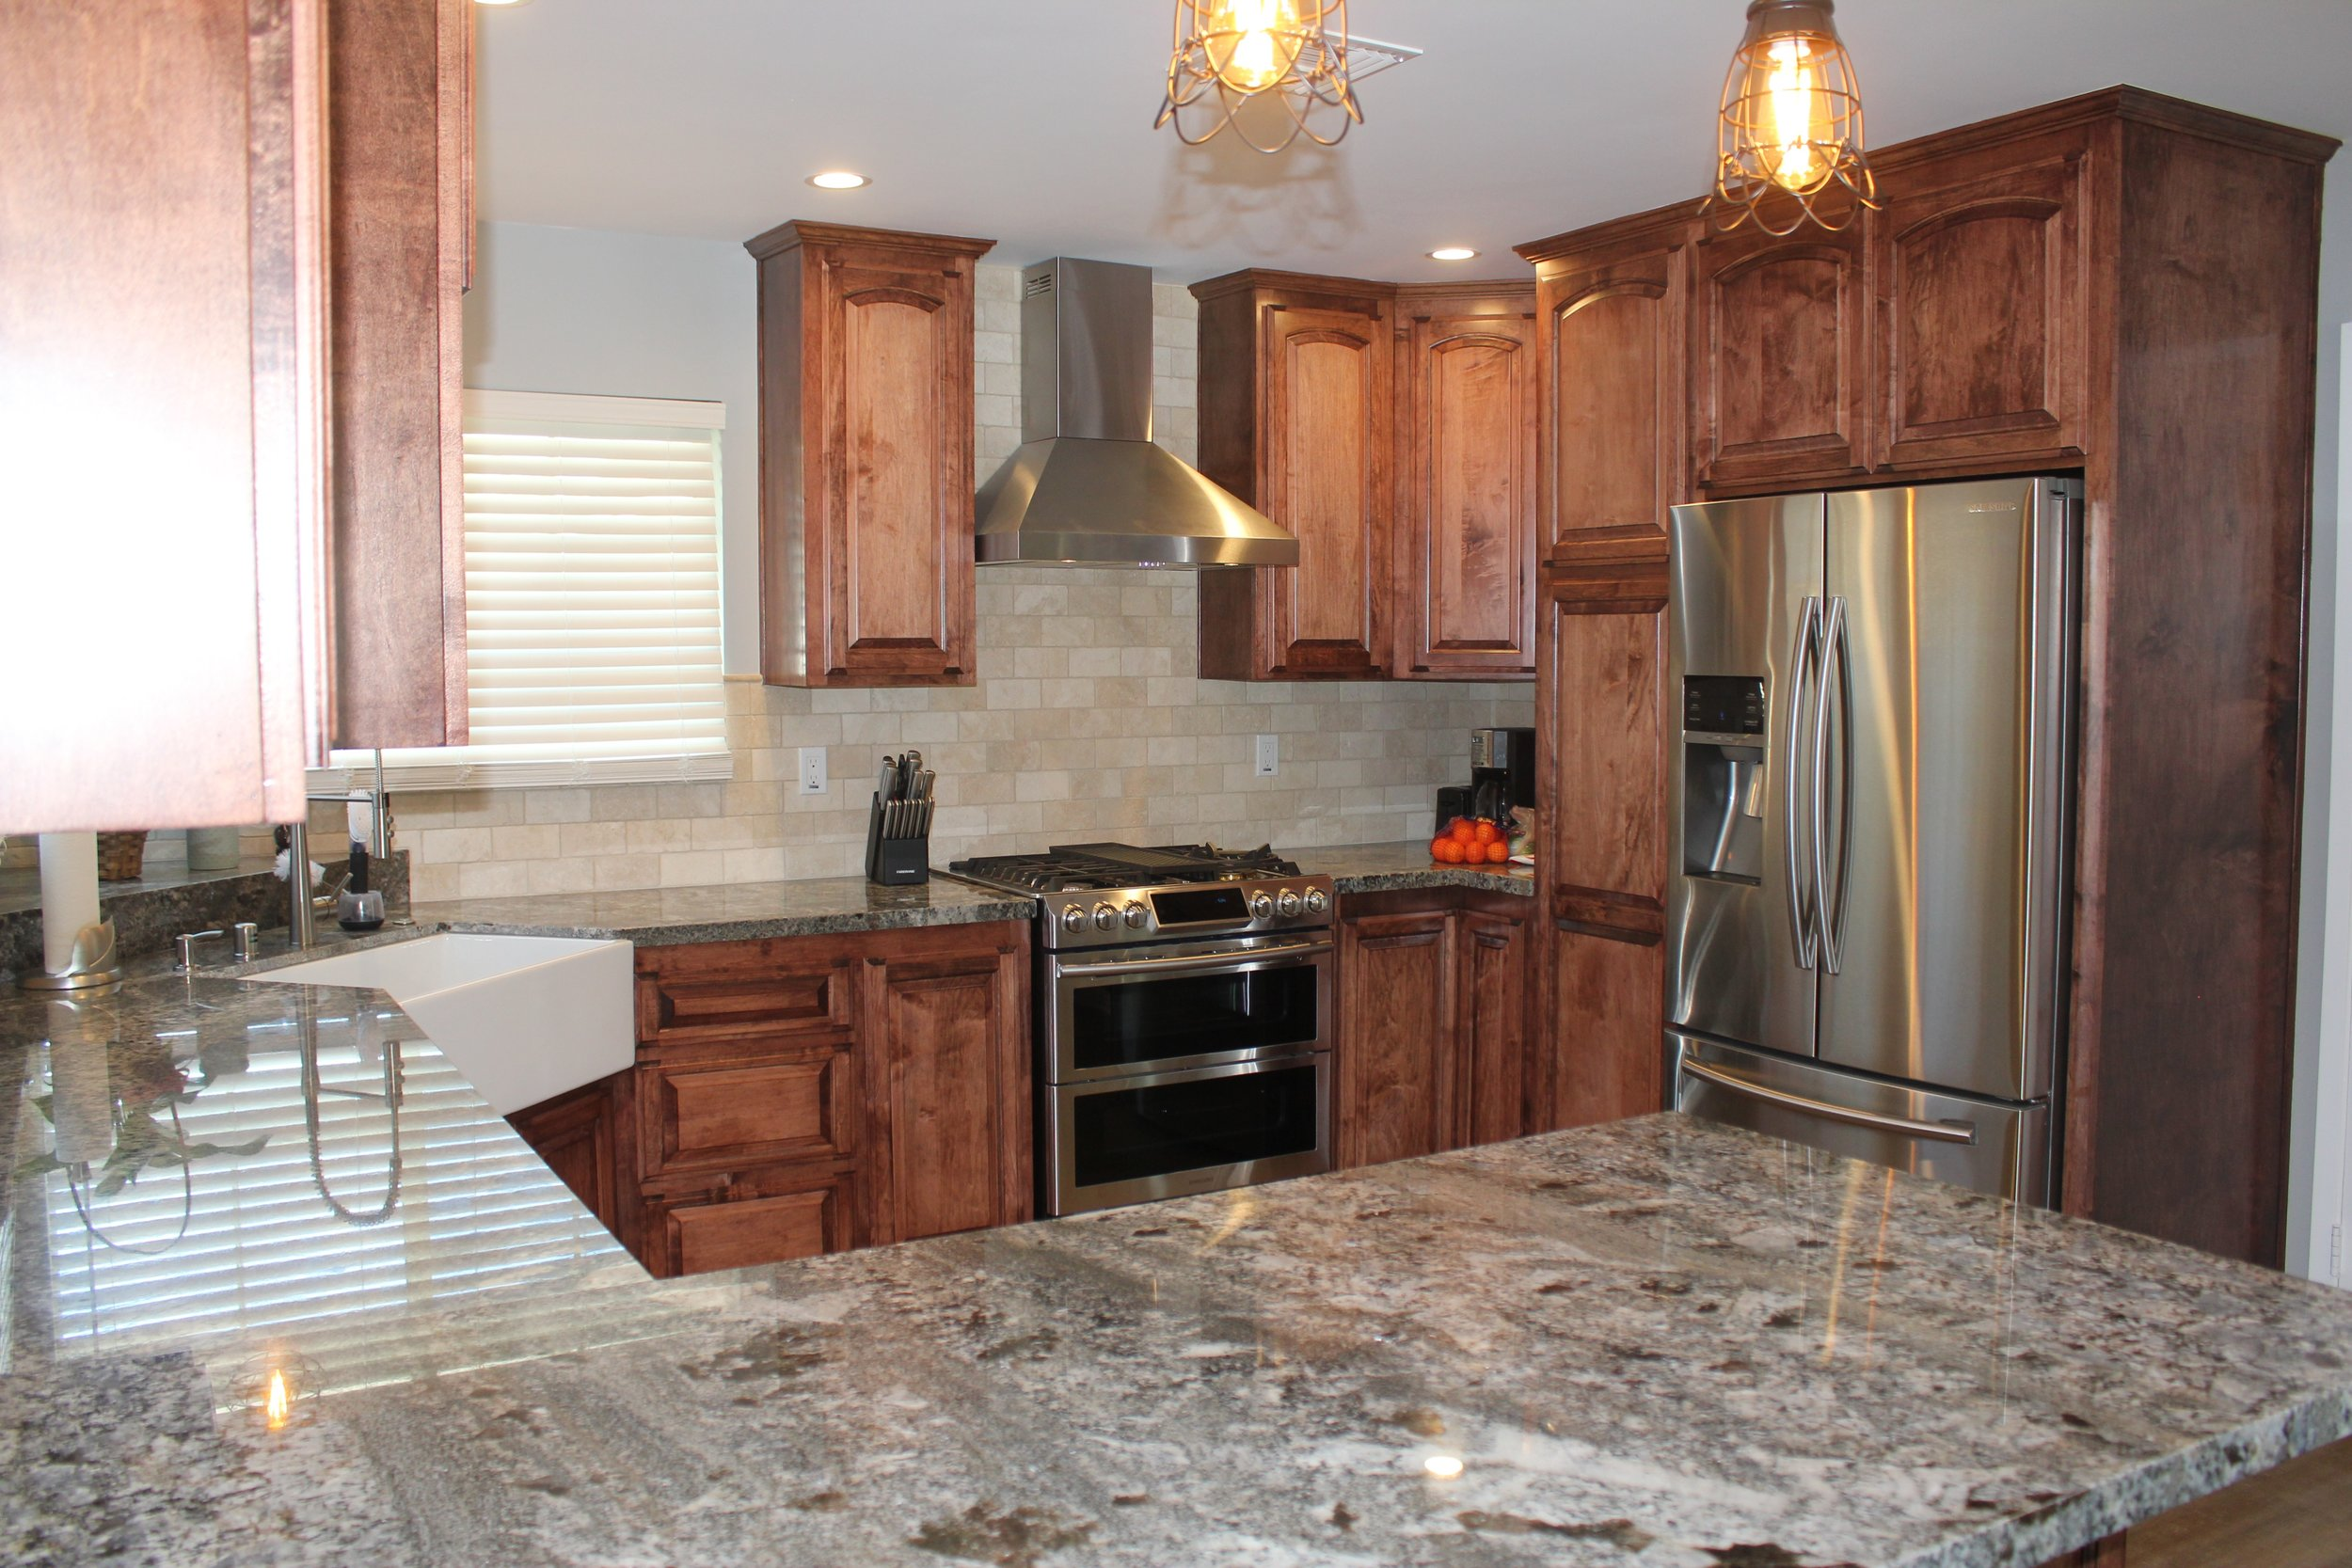 Granite counter tops and tile backsplash.